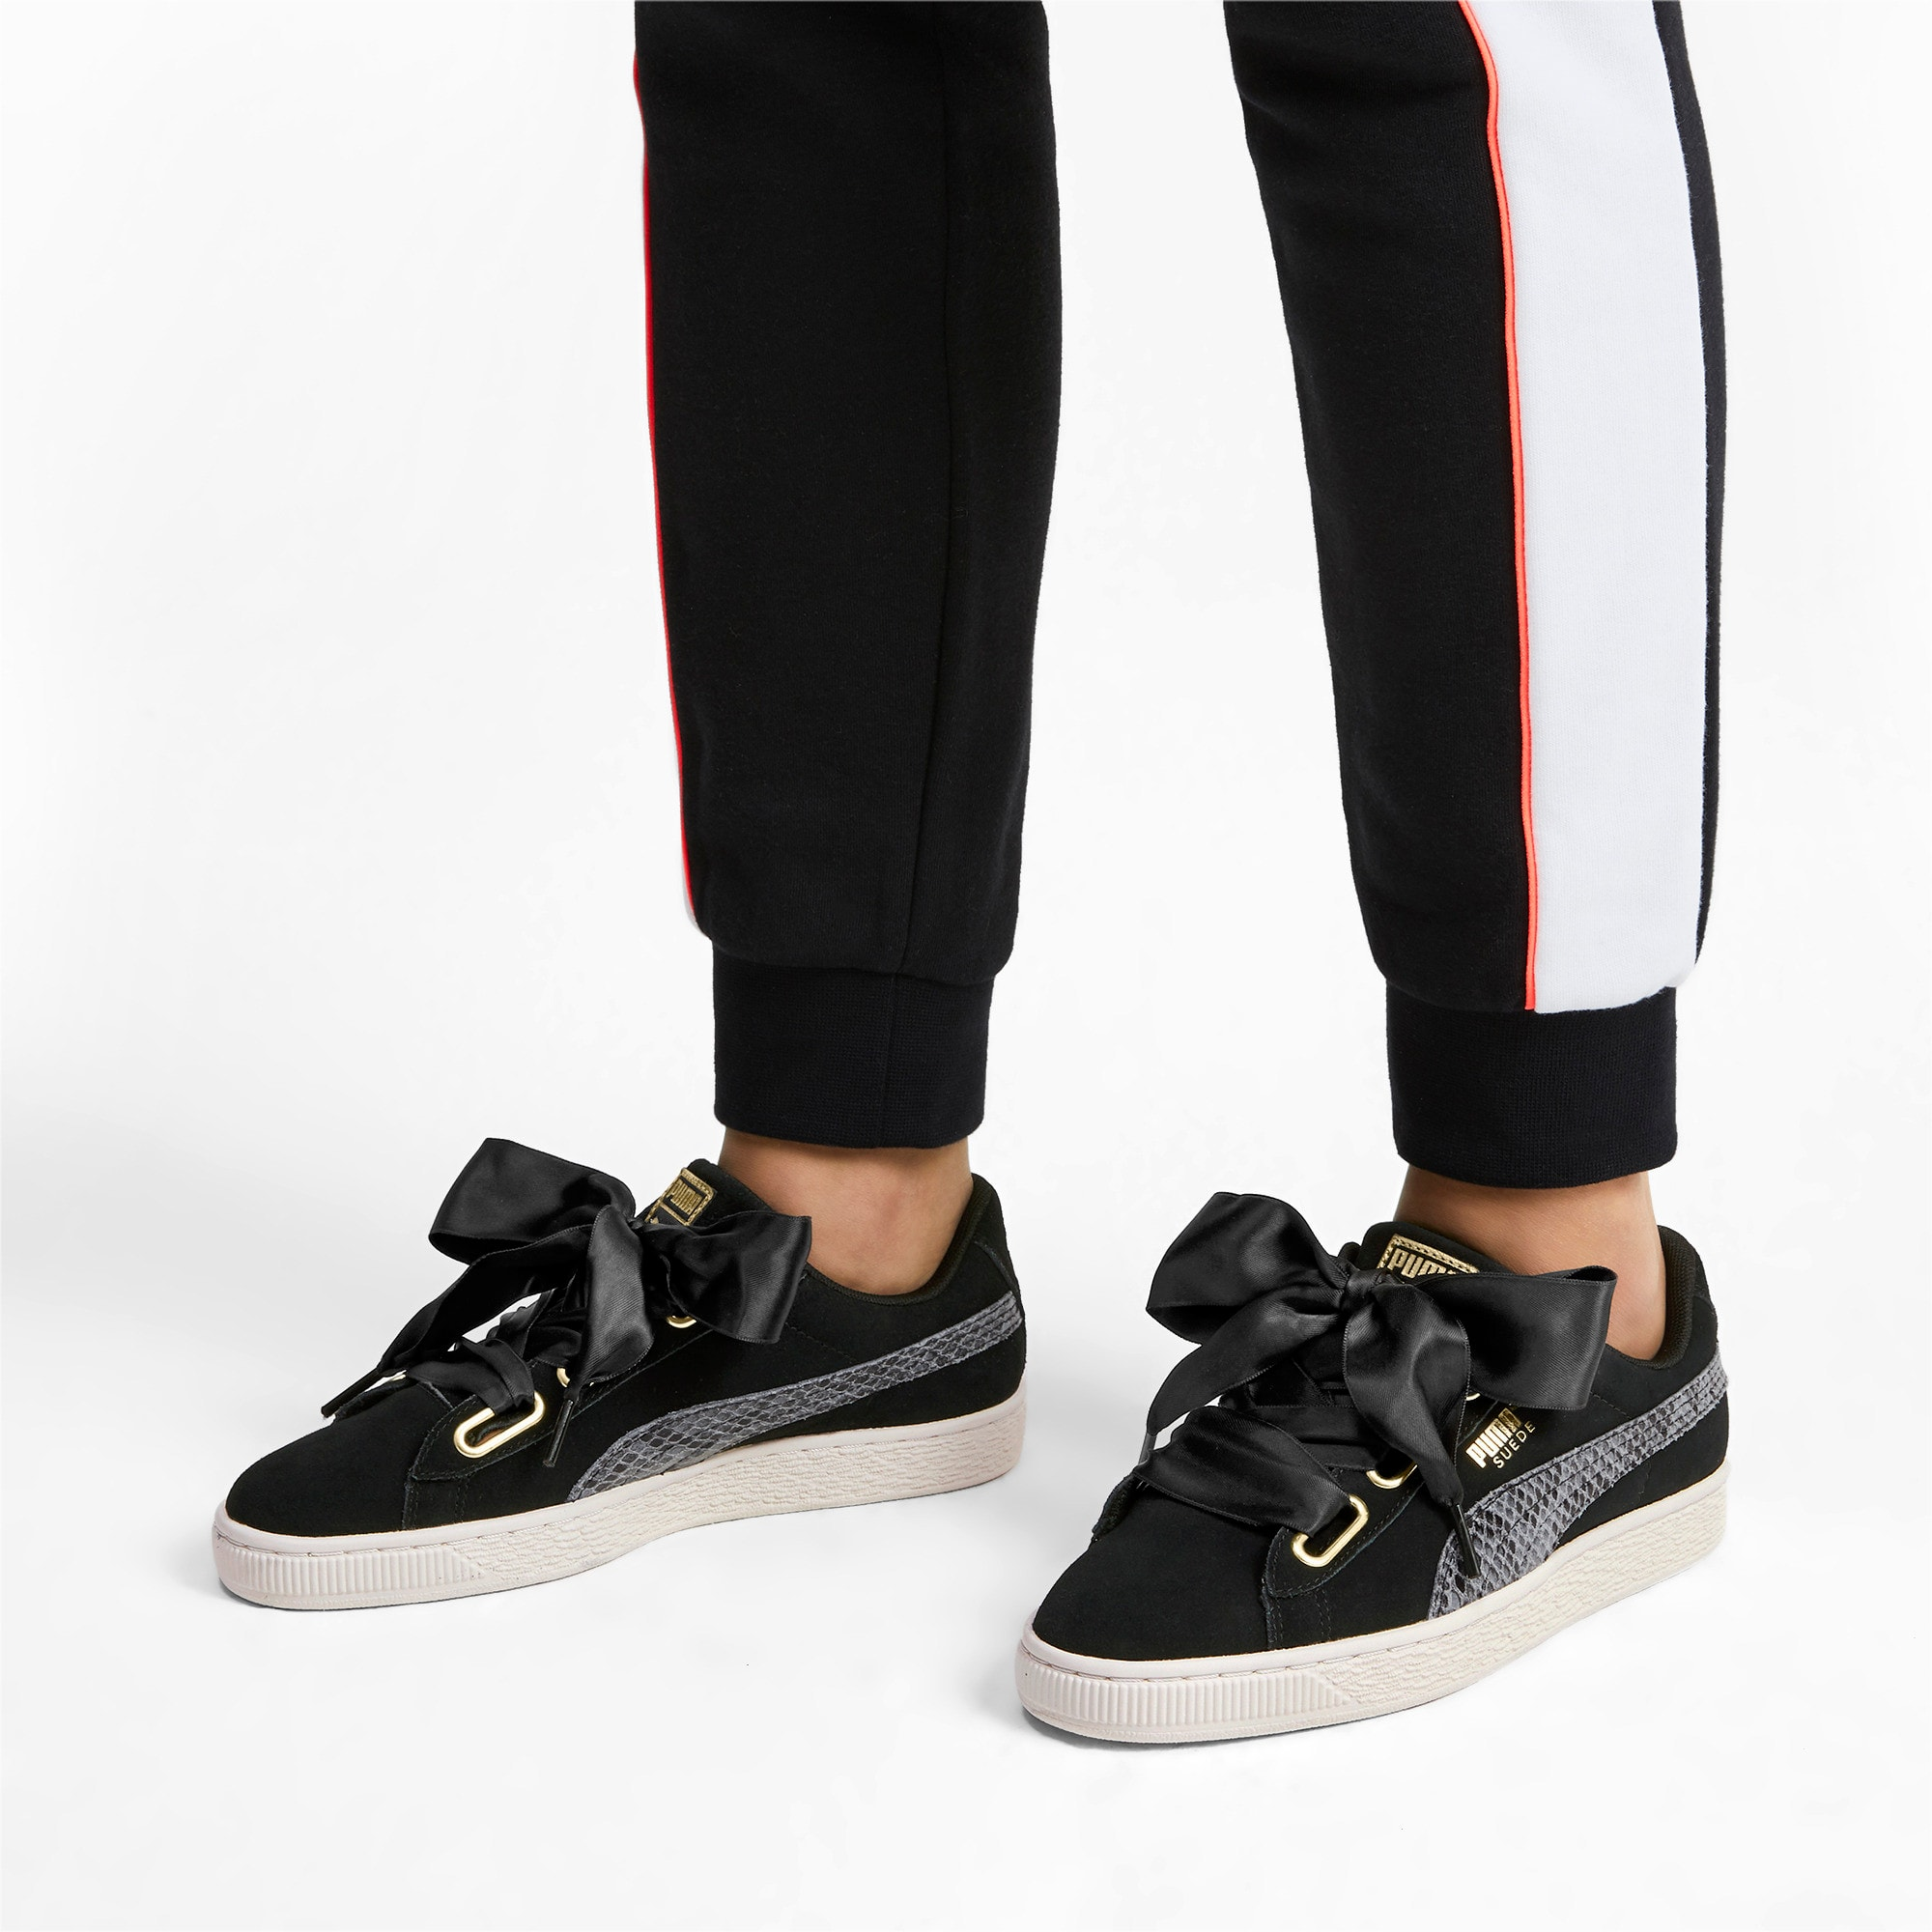 Thumbnail 2 of Suede Heart Snake Lux Women's Trainers, Puma Black-Puma Team Gold, medium-IND